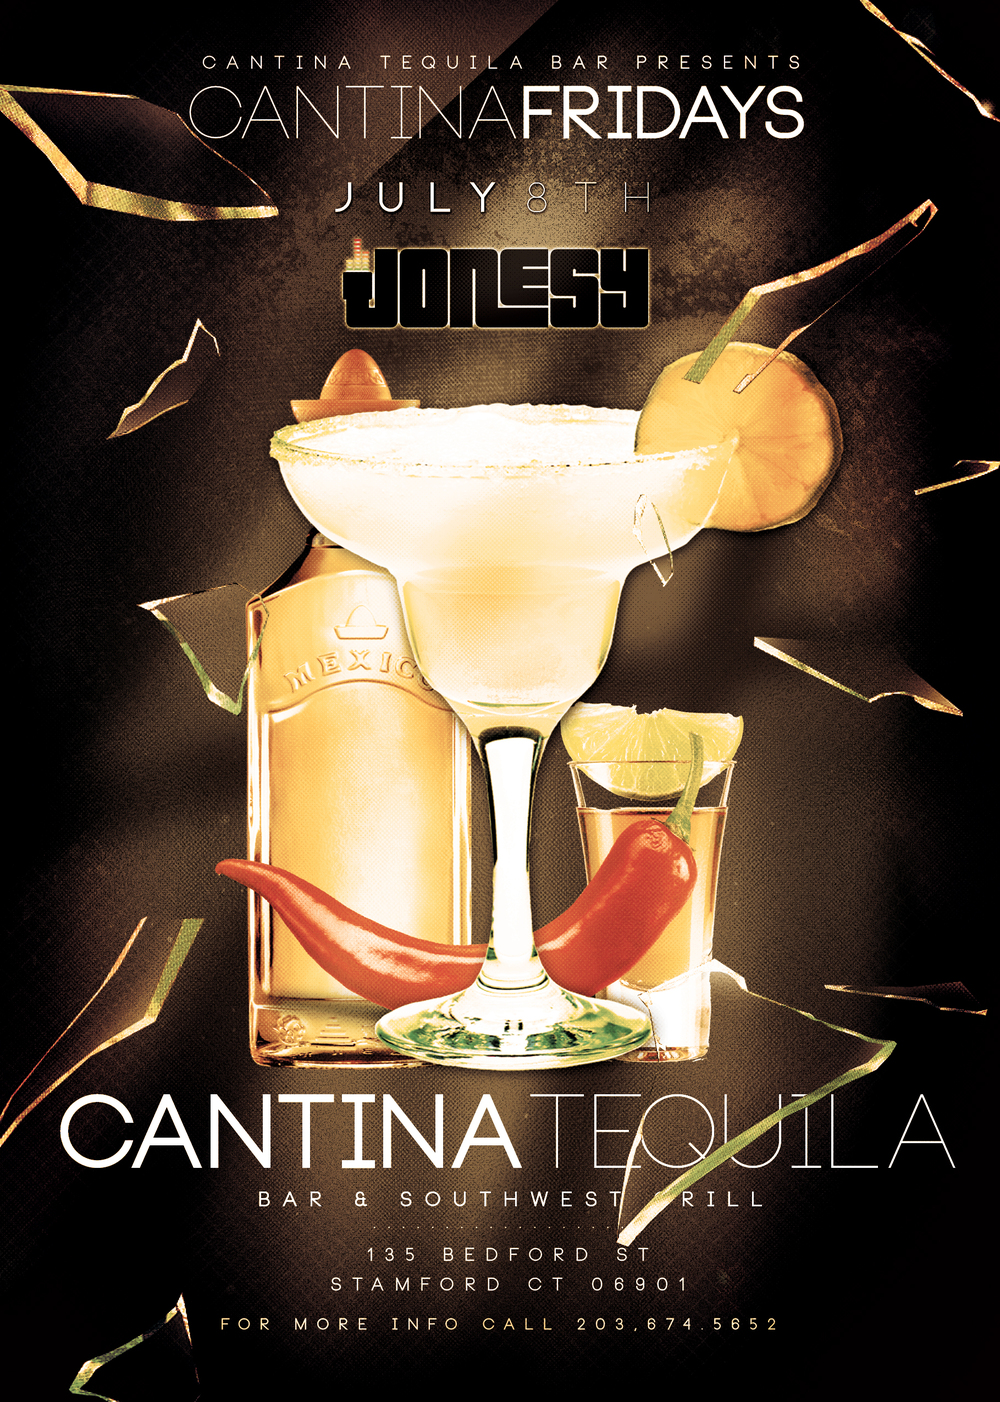 FRIDAY, JULY 8TH JOIN US AT CANTINA TEQUILA BAR & SOUTHWEST GRILL FOR CANTINA FRIDAYS!  MUSIC BY JONESY ALL NIGHT LONG!  HOPE TO SEE EVERYONE THERE!